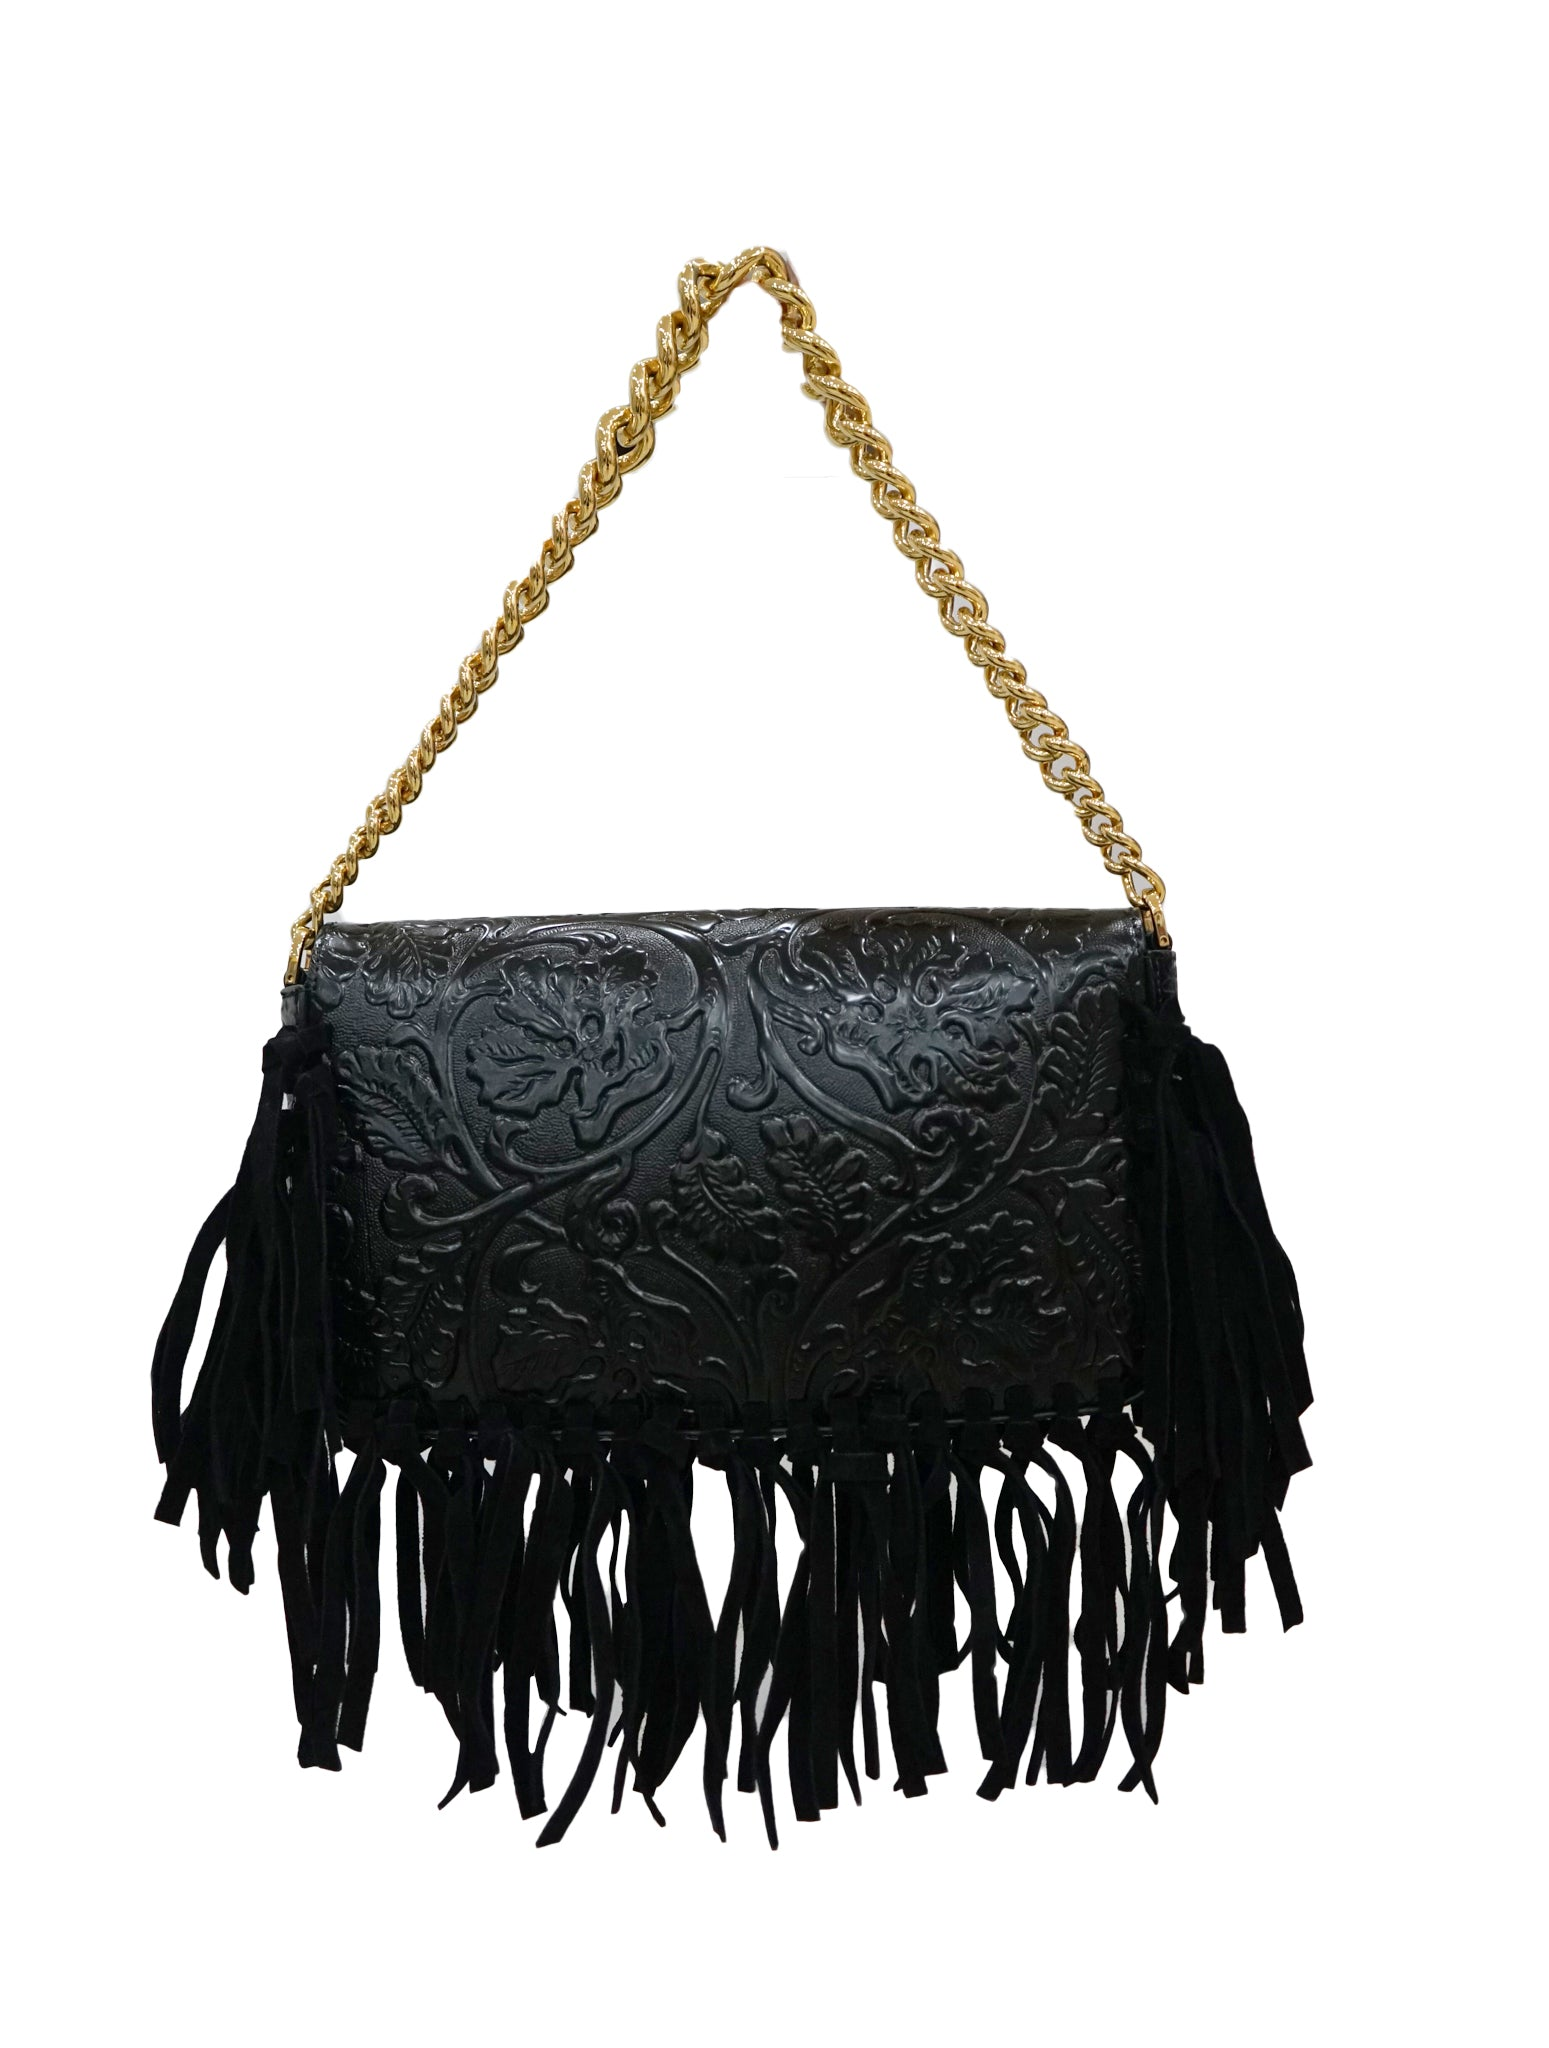 EMBOSSED PRINT FRINGE SHOULDER BAG